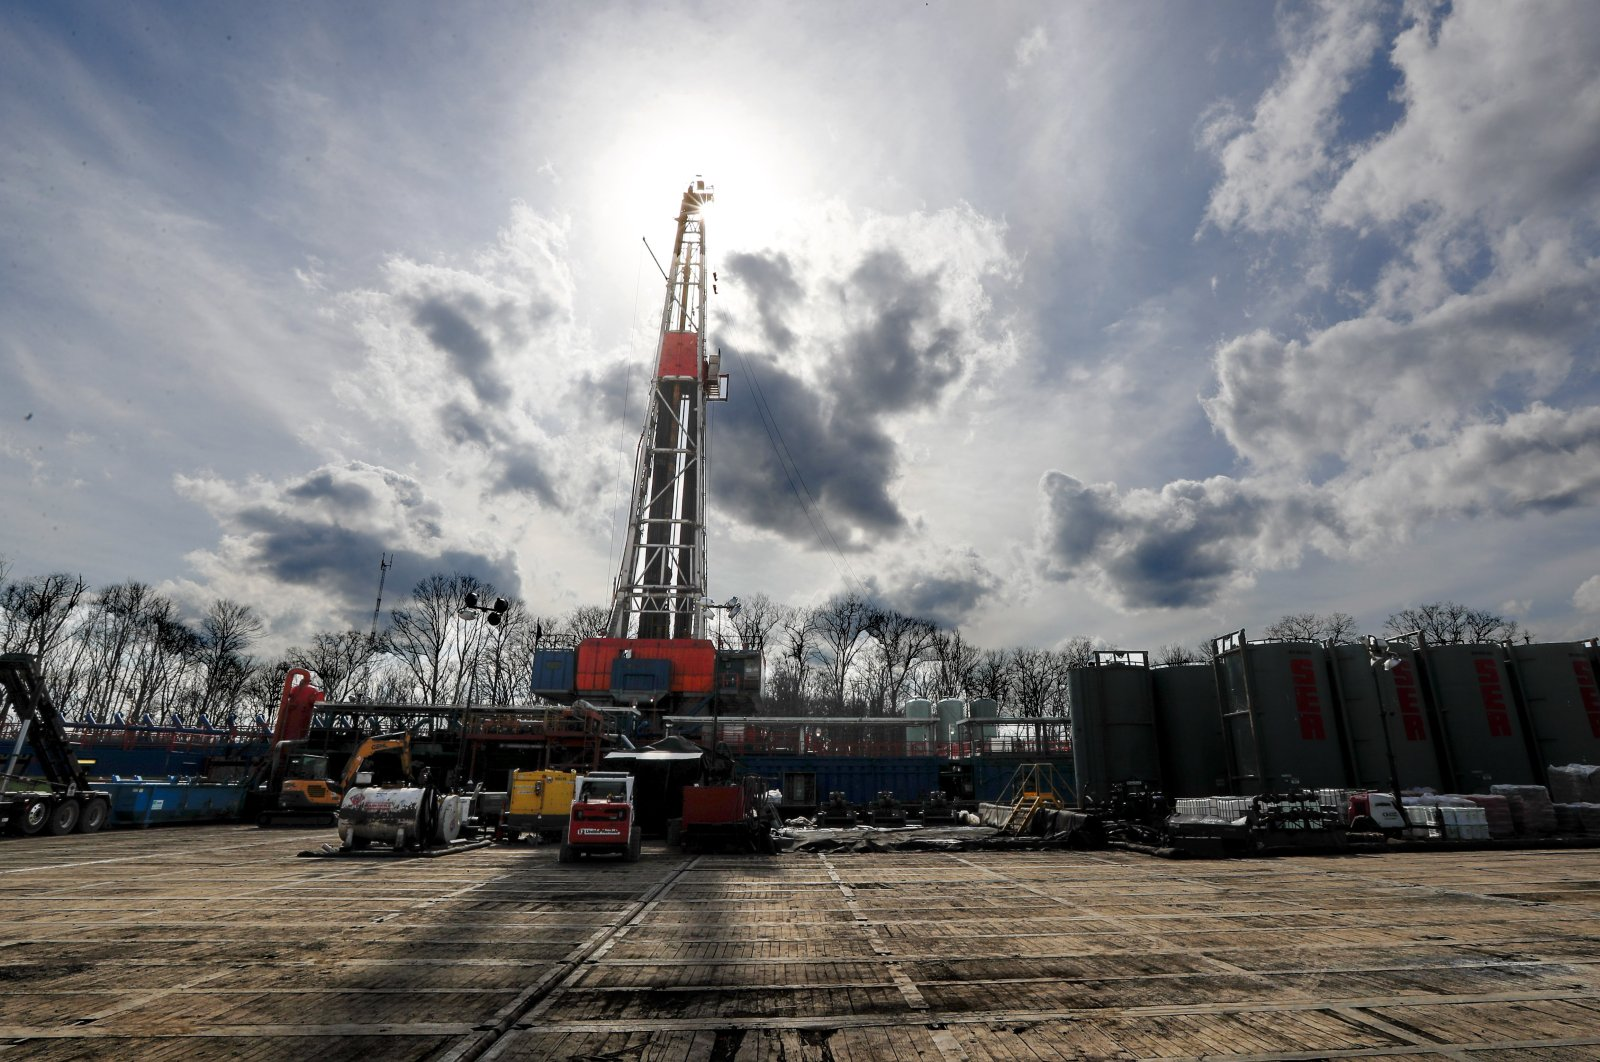 The sun shines through clouds above a shale gas drilling site in St. Mary's, Pennsylvania, March 12, 2020. (AP Photo)